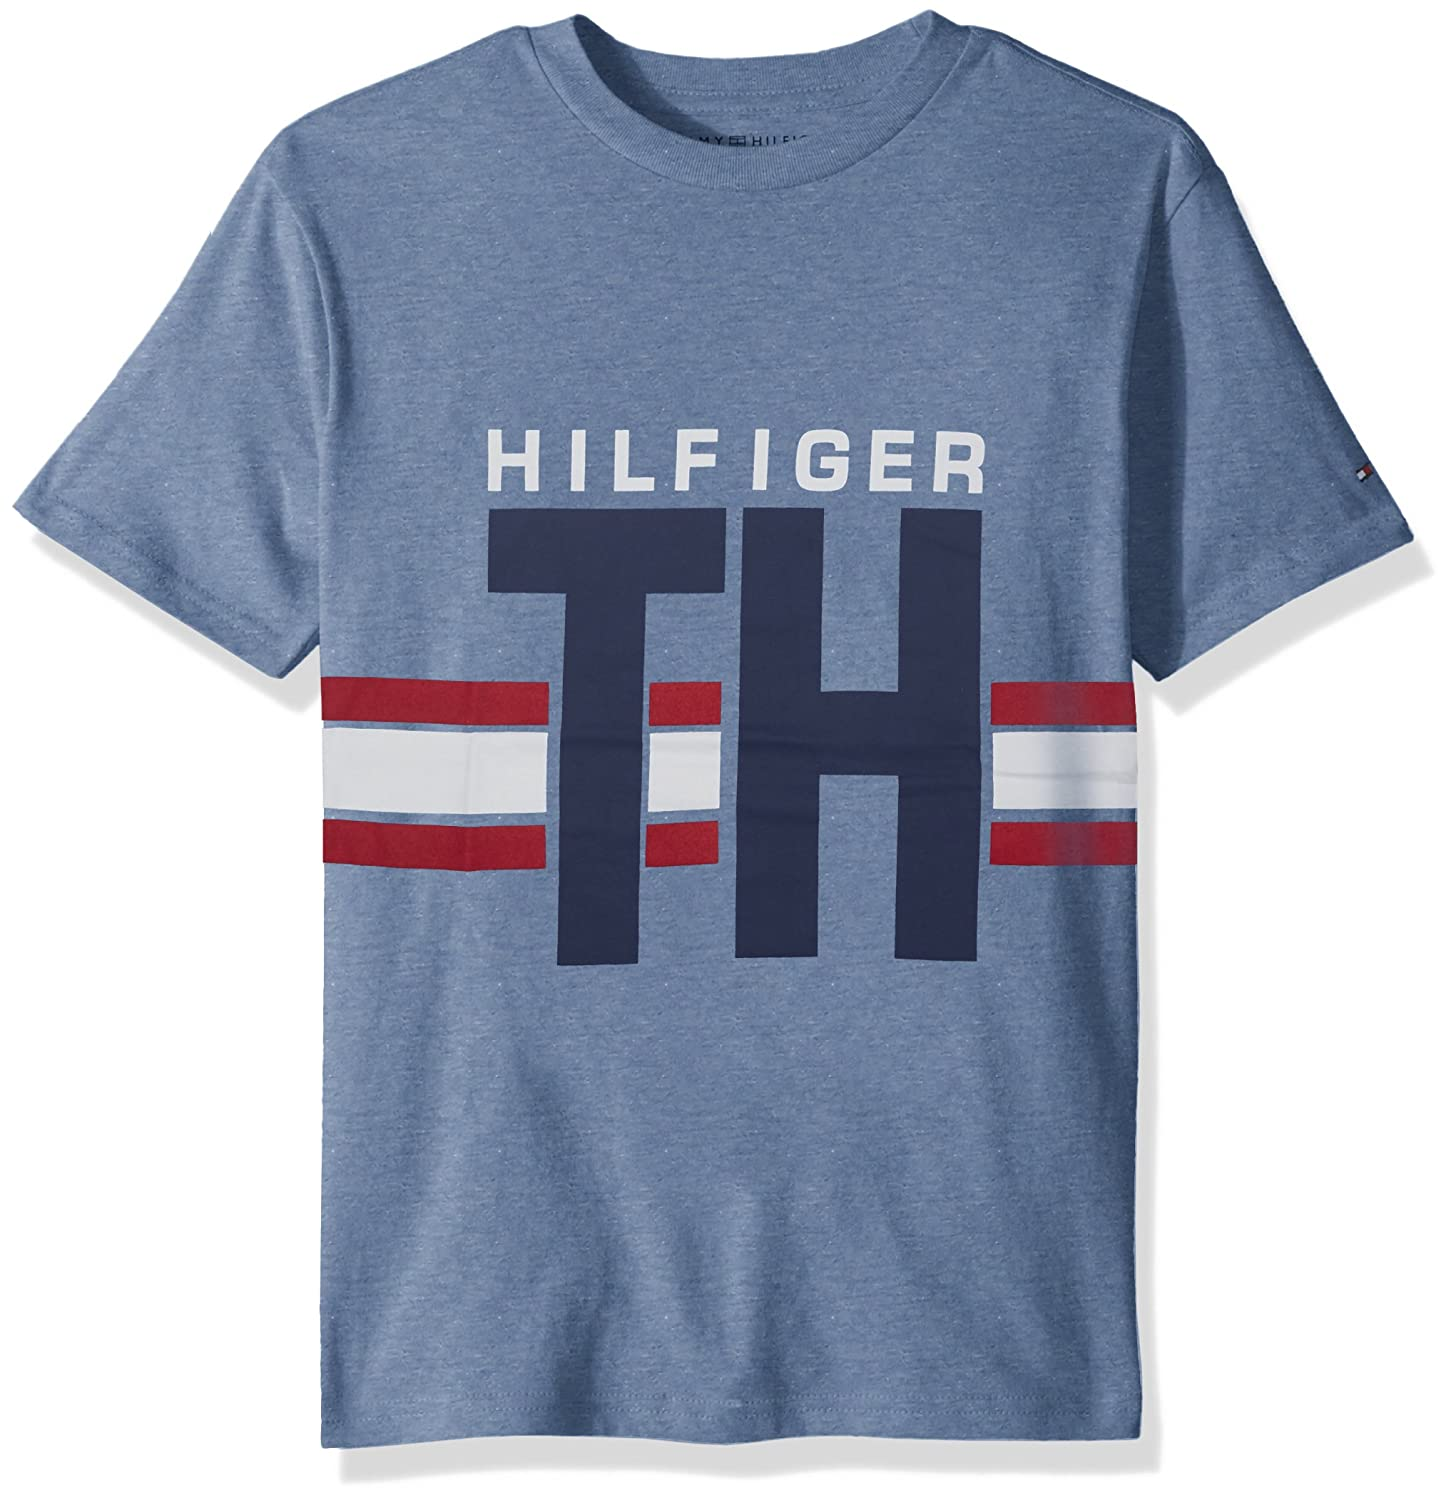 Tommy Hilfiger Boys' Short Sleeve Graphic T-Shirt